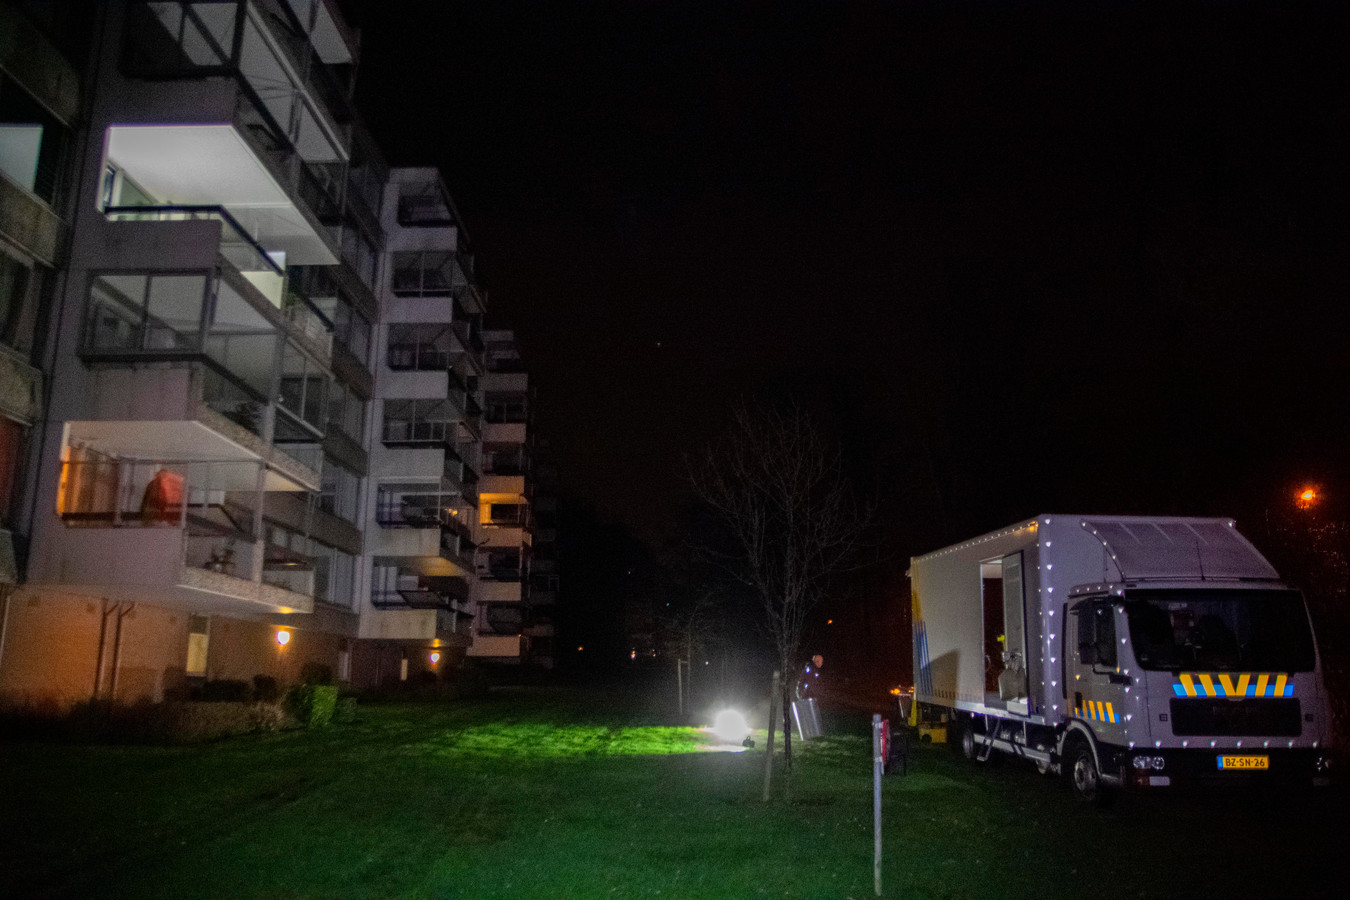 De flat aan de Beethovenlaan in Doorwerth.